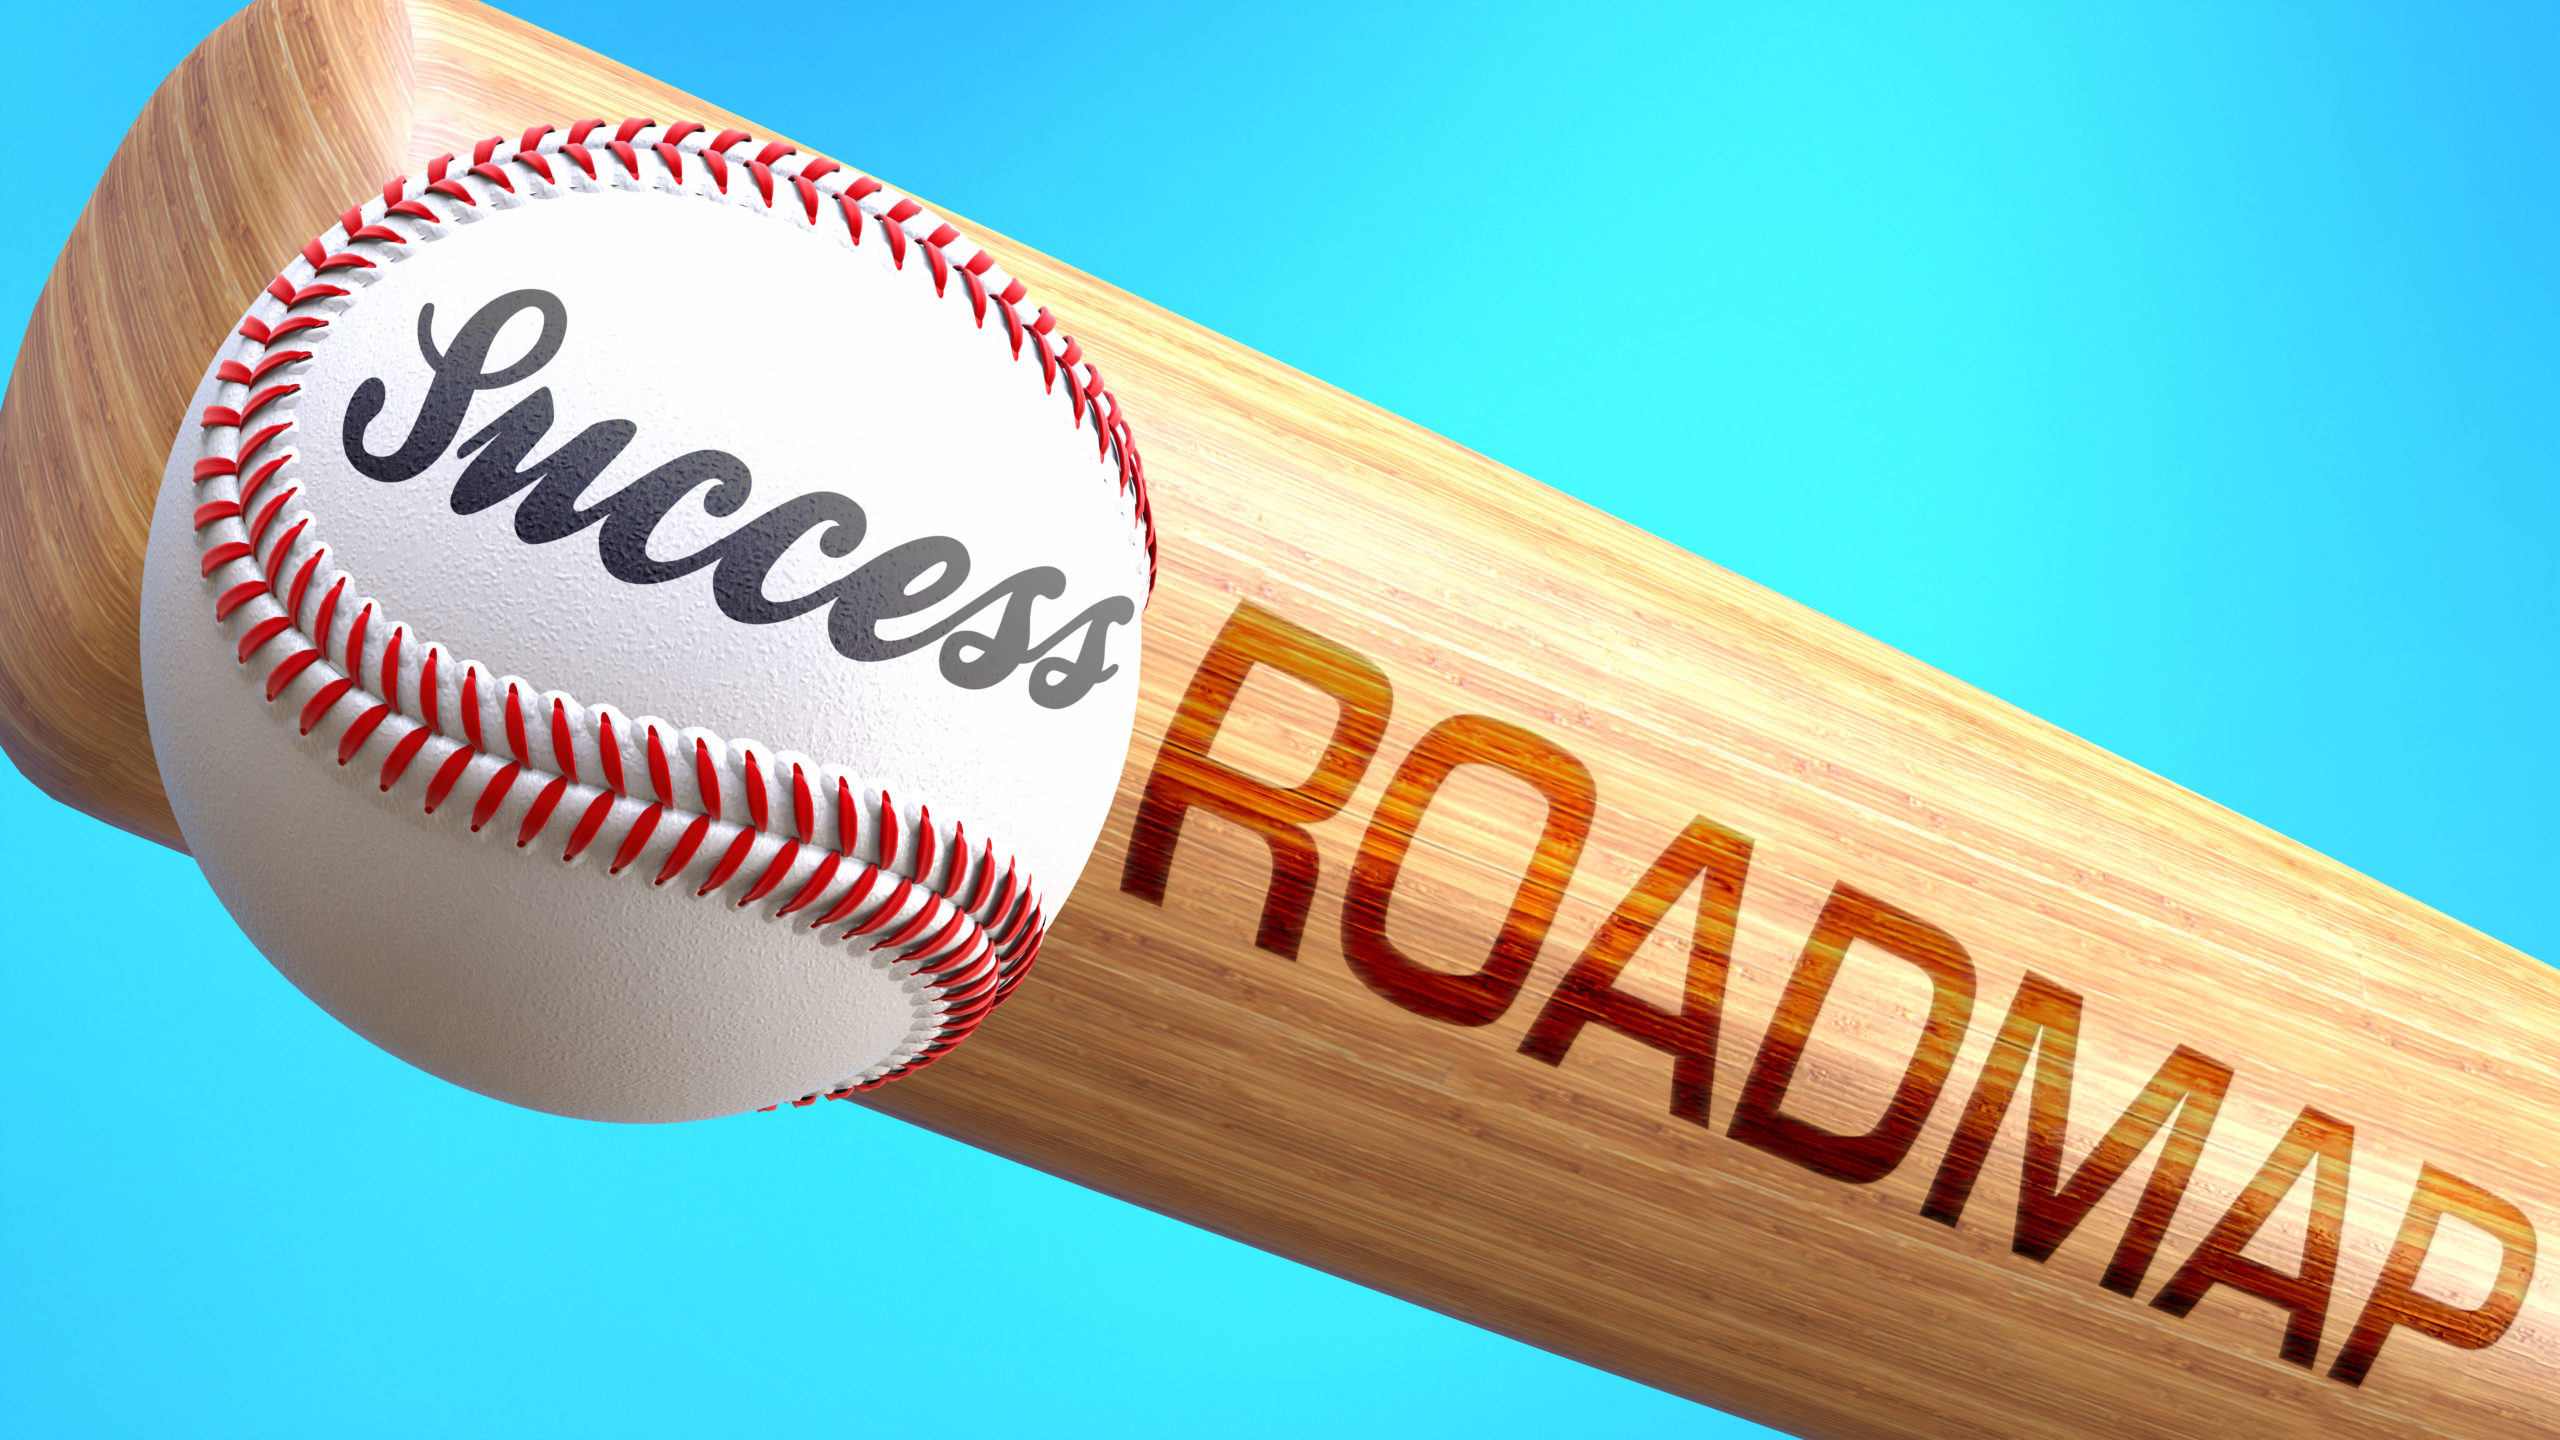 Success in life depends on roadmap - pictured as word roadmap on a bat, to show that roadmap is crucial for successful business or life., 3d illustration